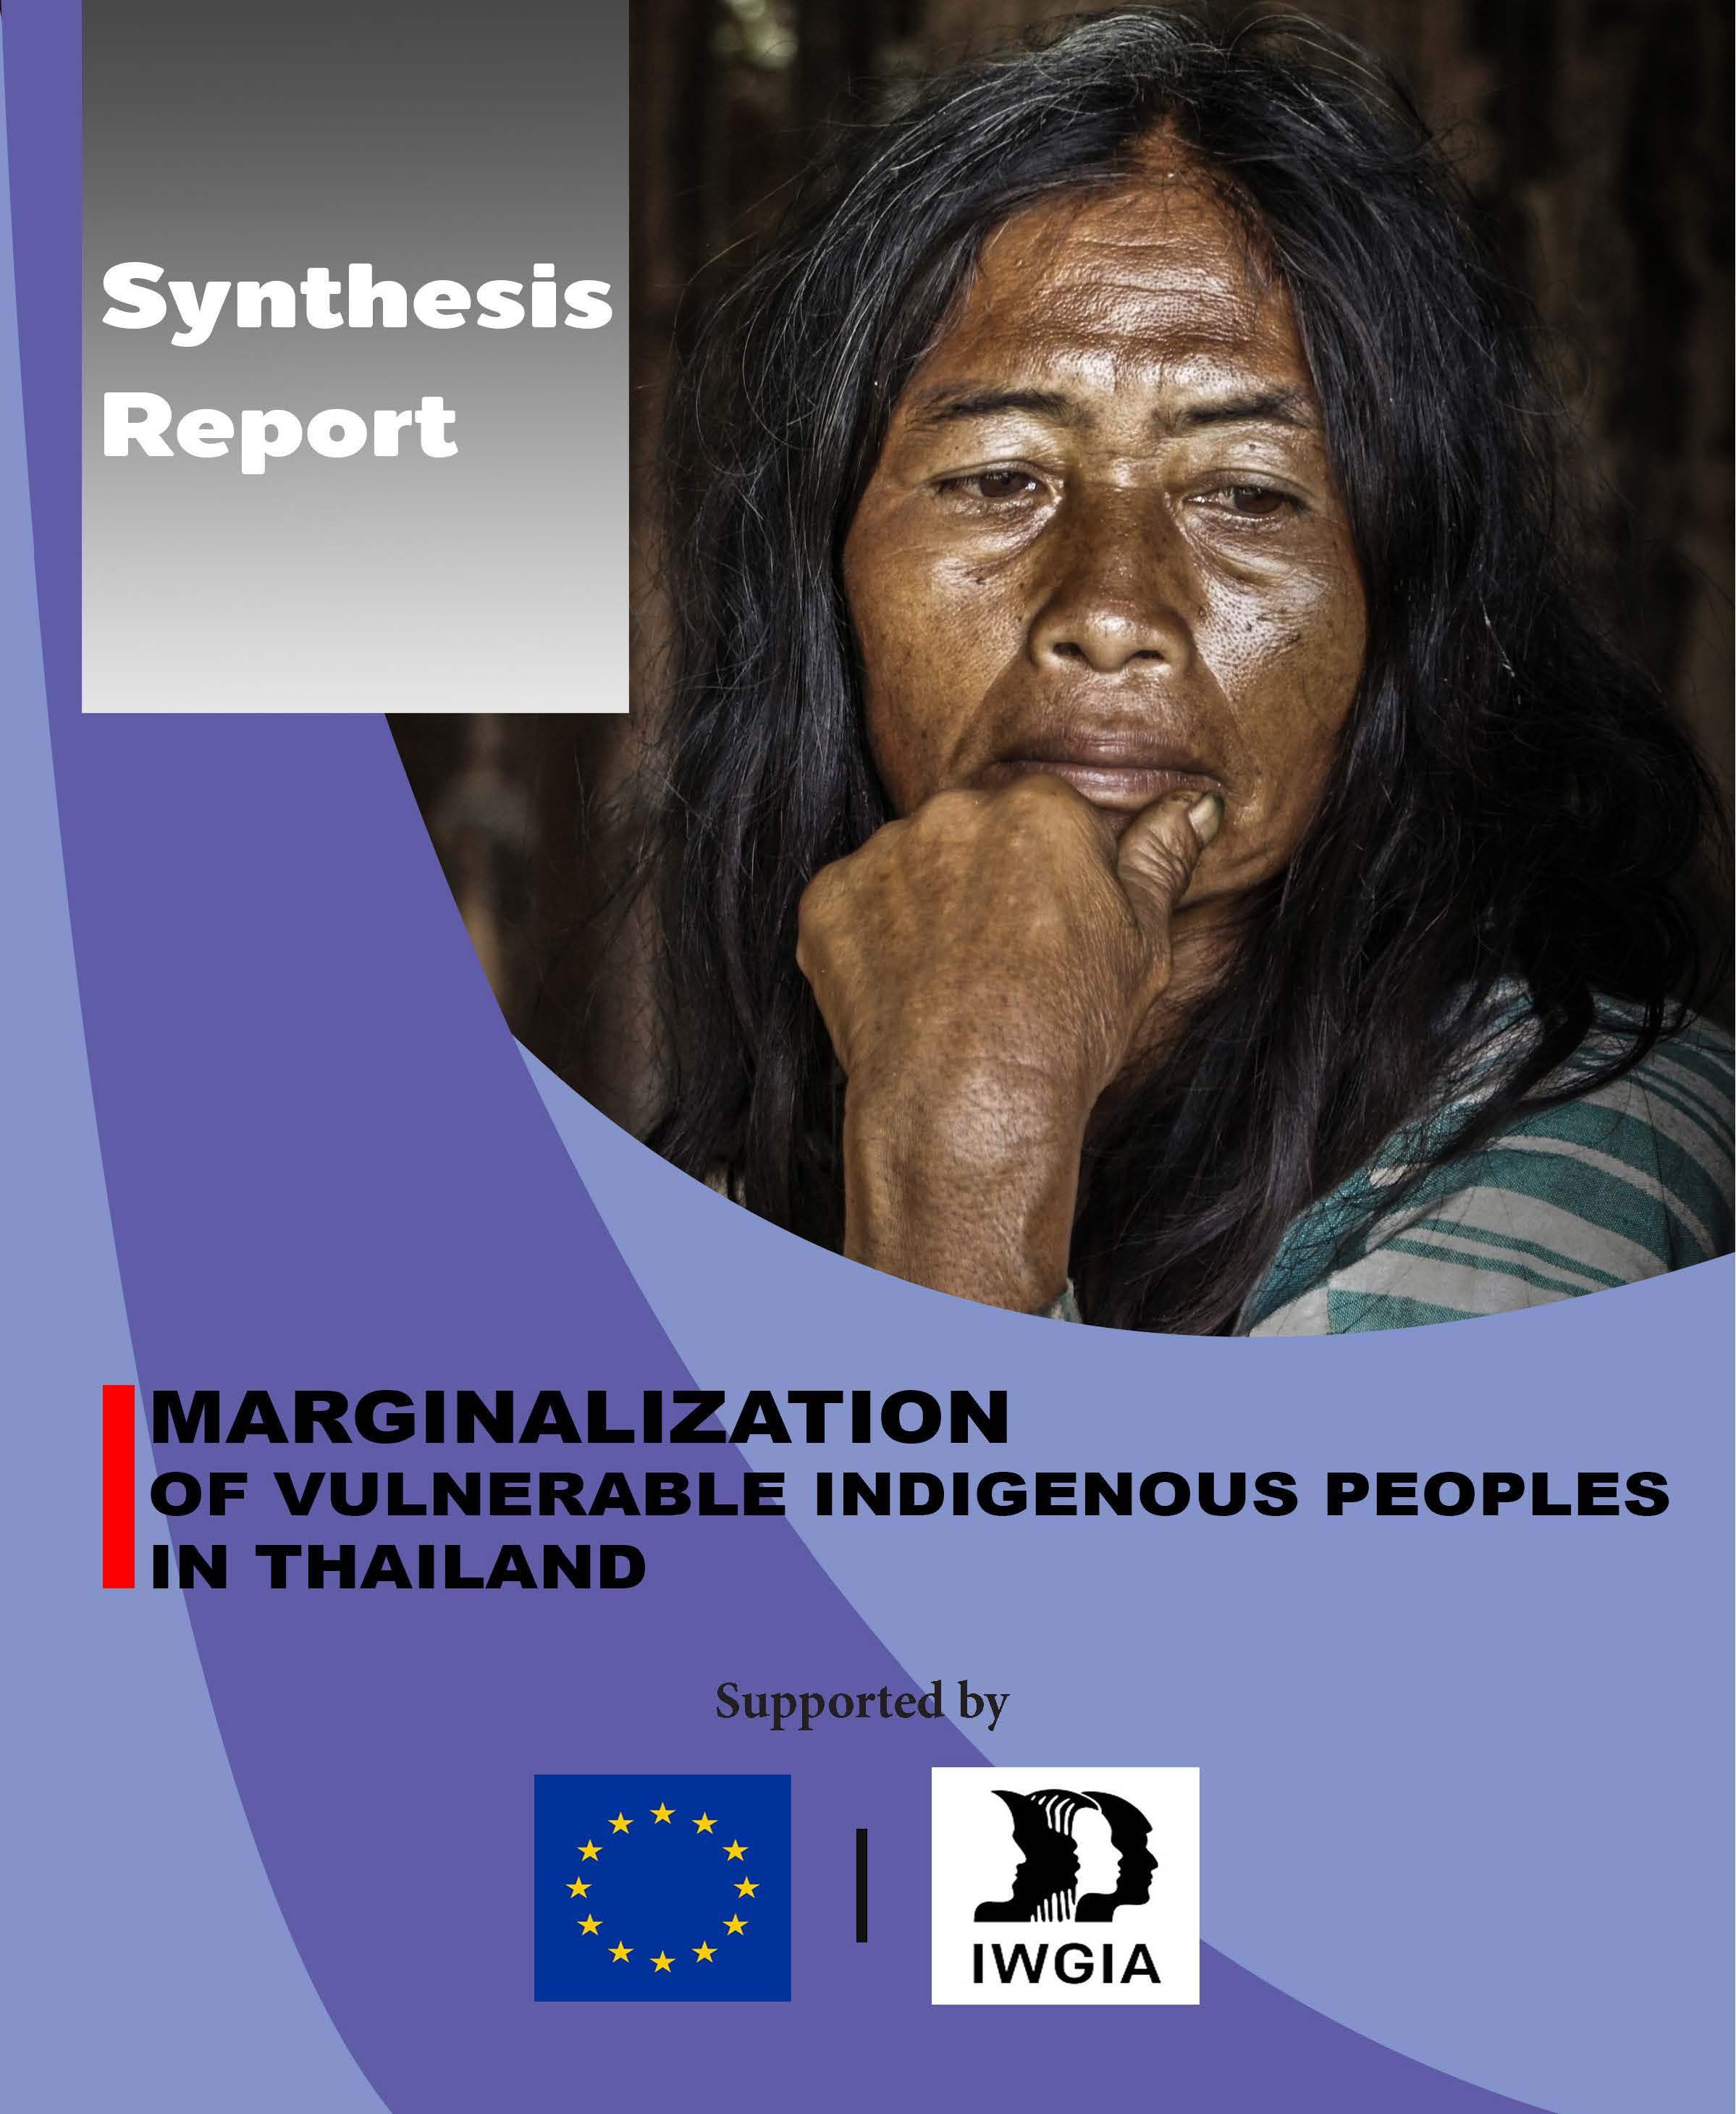 Synthesis report: Marginalization of vulnerable indigenous peoples in Thailand